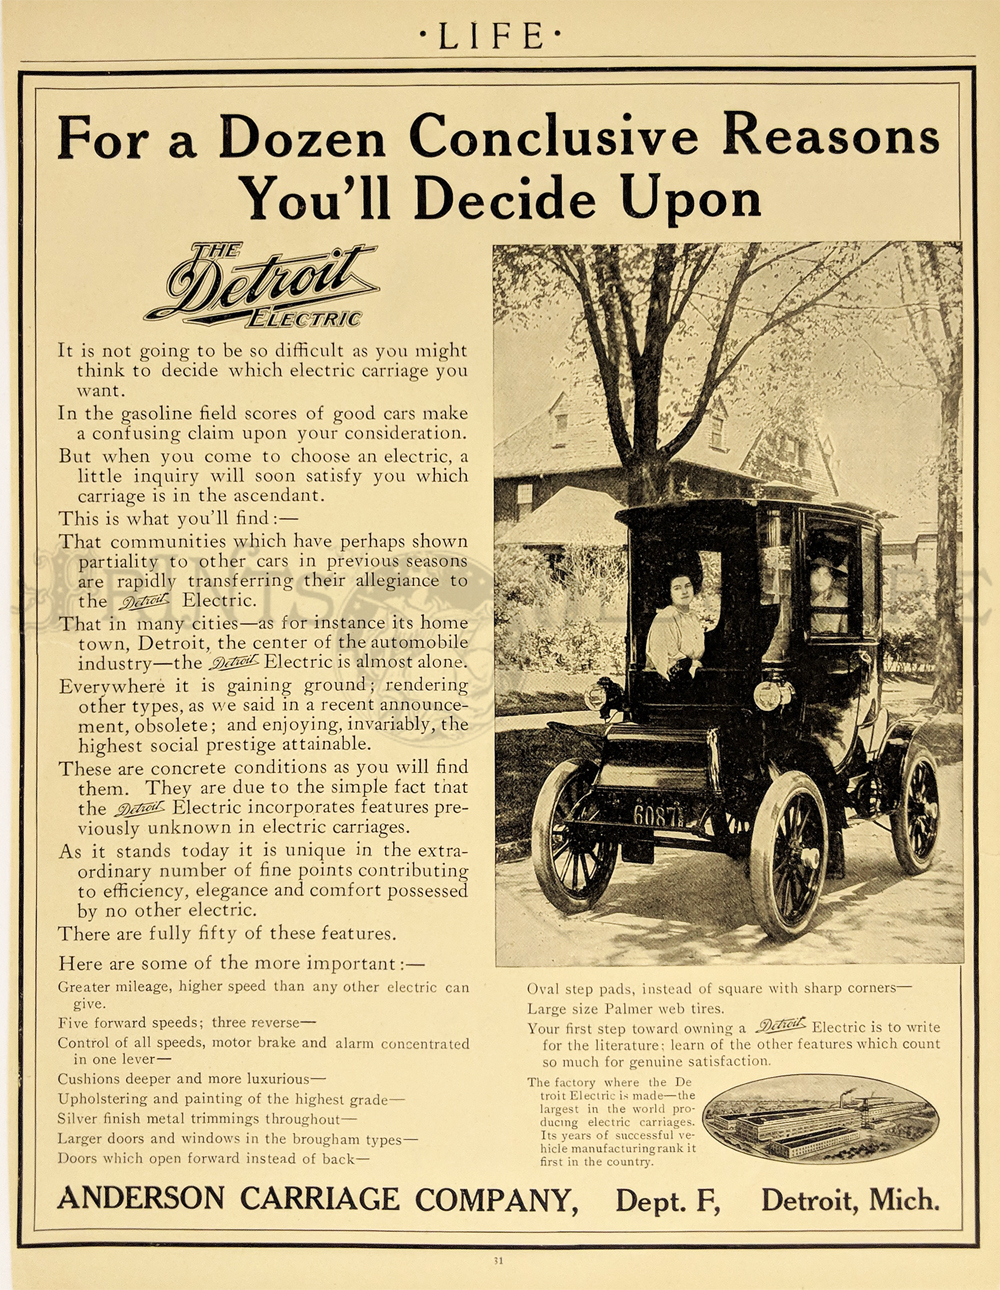 This Scarce Black White Ad From Early Life A Picture Of The Electric Battery Driven Car And Anderson Carriage Company Detroit 8 1 2x11 In